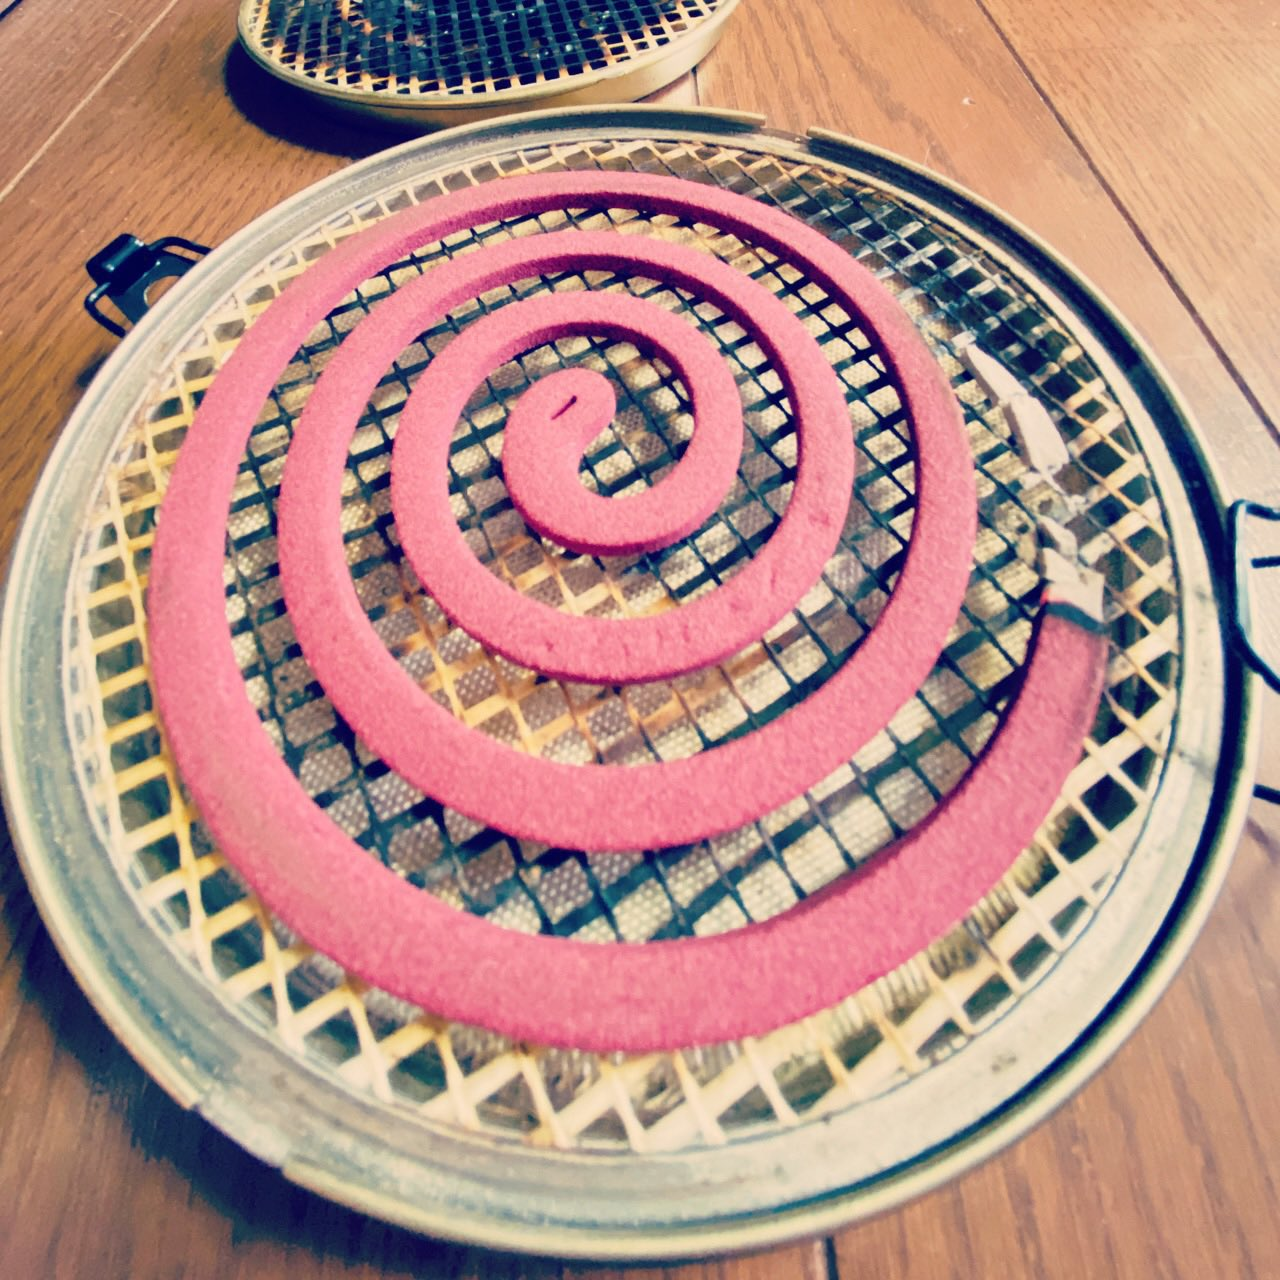 mosquito coil 蚊取り線香を焚く https://t.co/4A9K0y1DQl